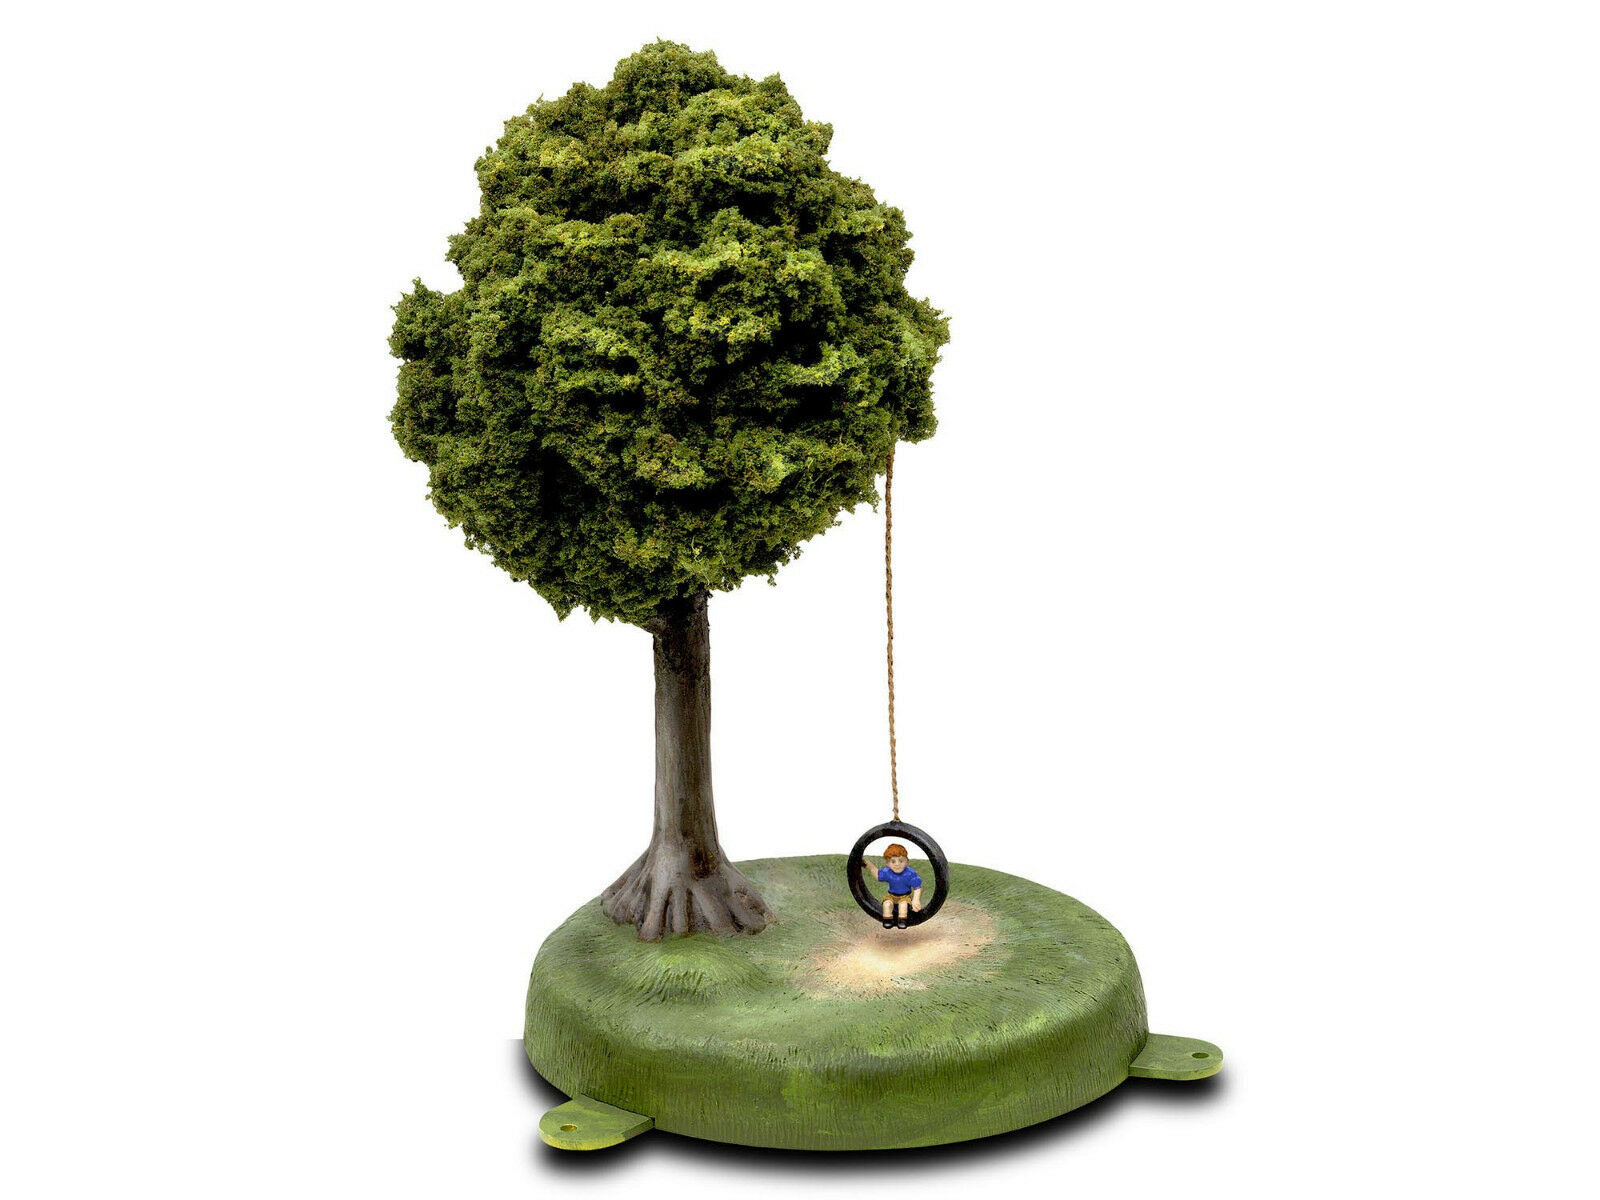 Lionel O Scale 6-82105 Plug and Play Animated TIRE SWING NEW IN BOX